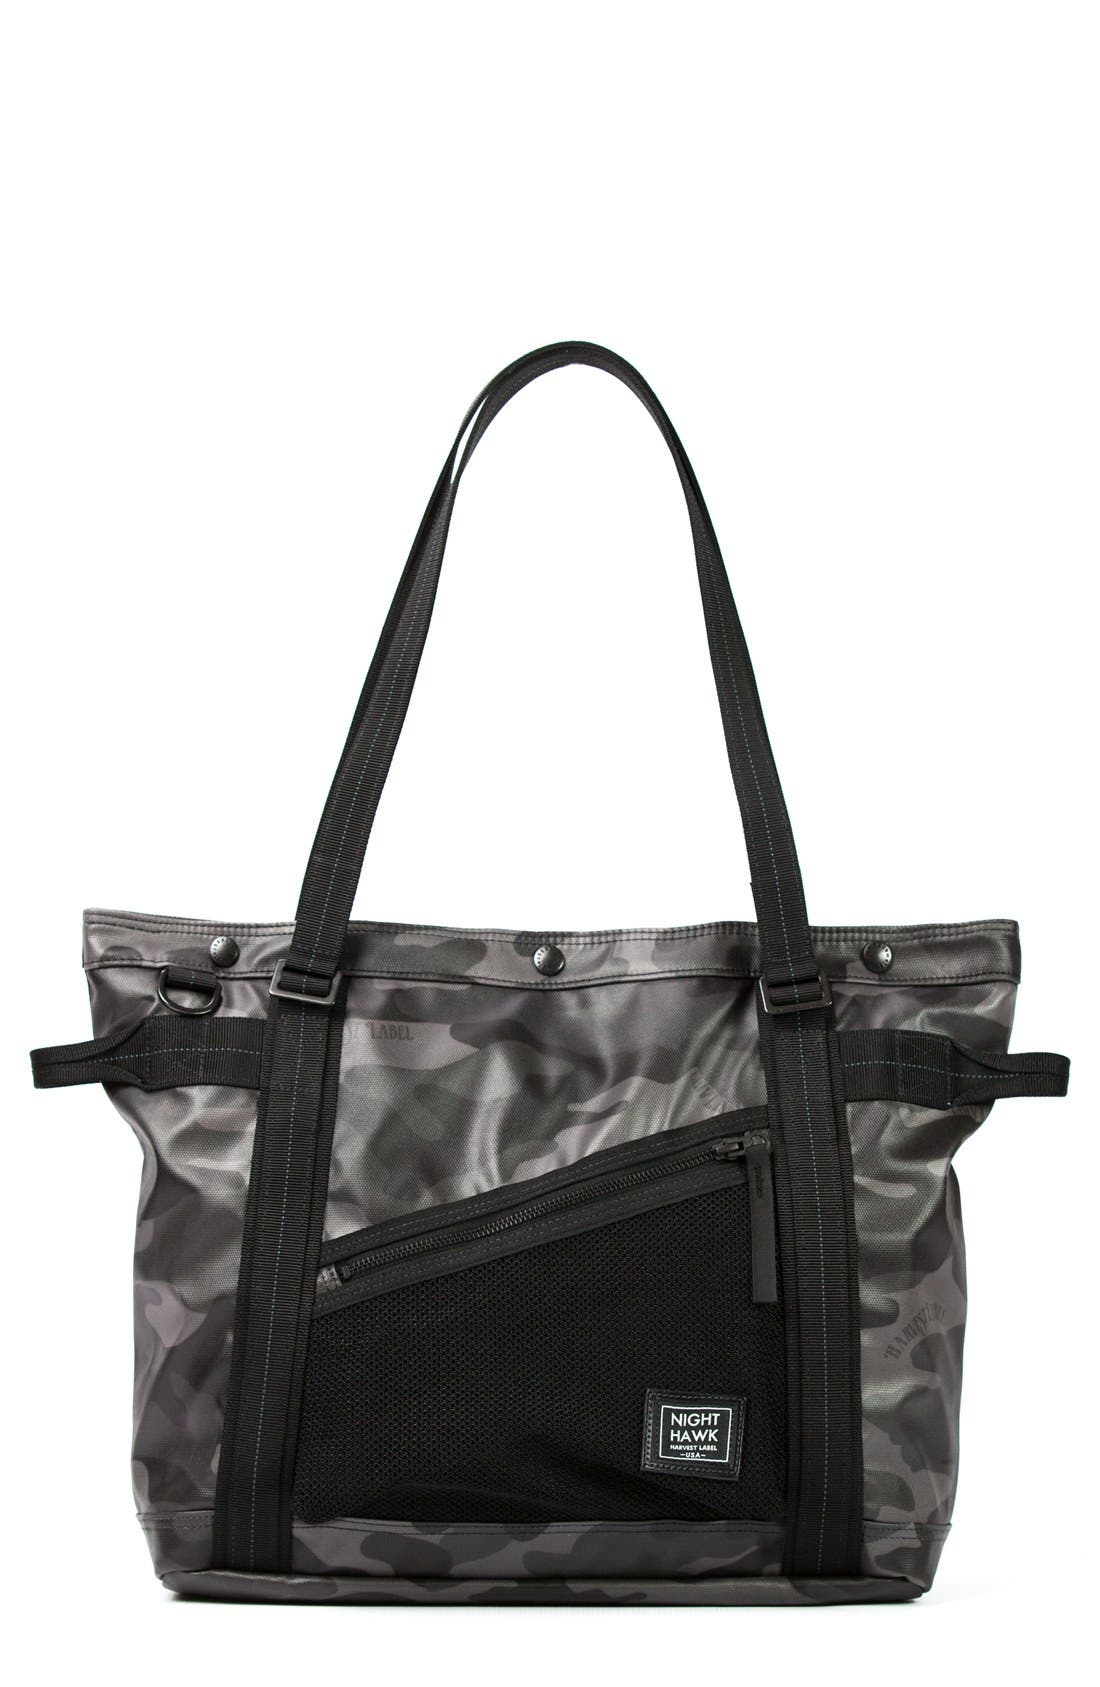 HARVEST LABEL 'NightHawk' Tote Bag